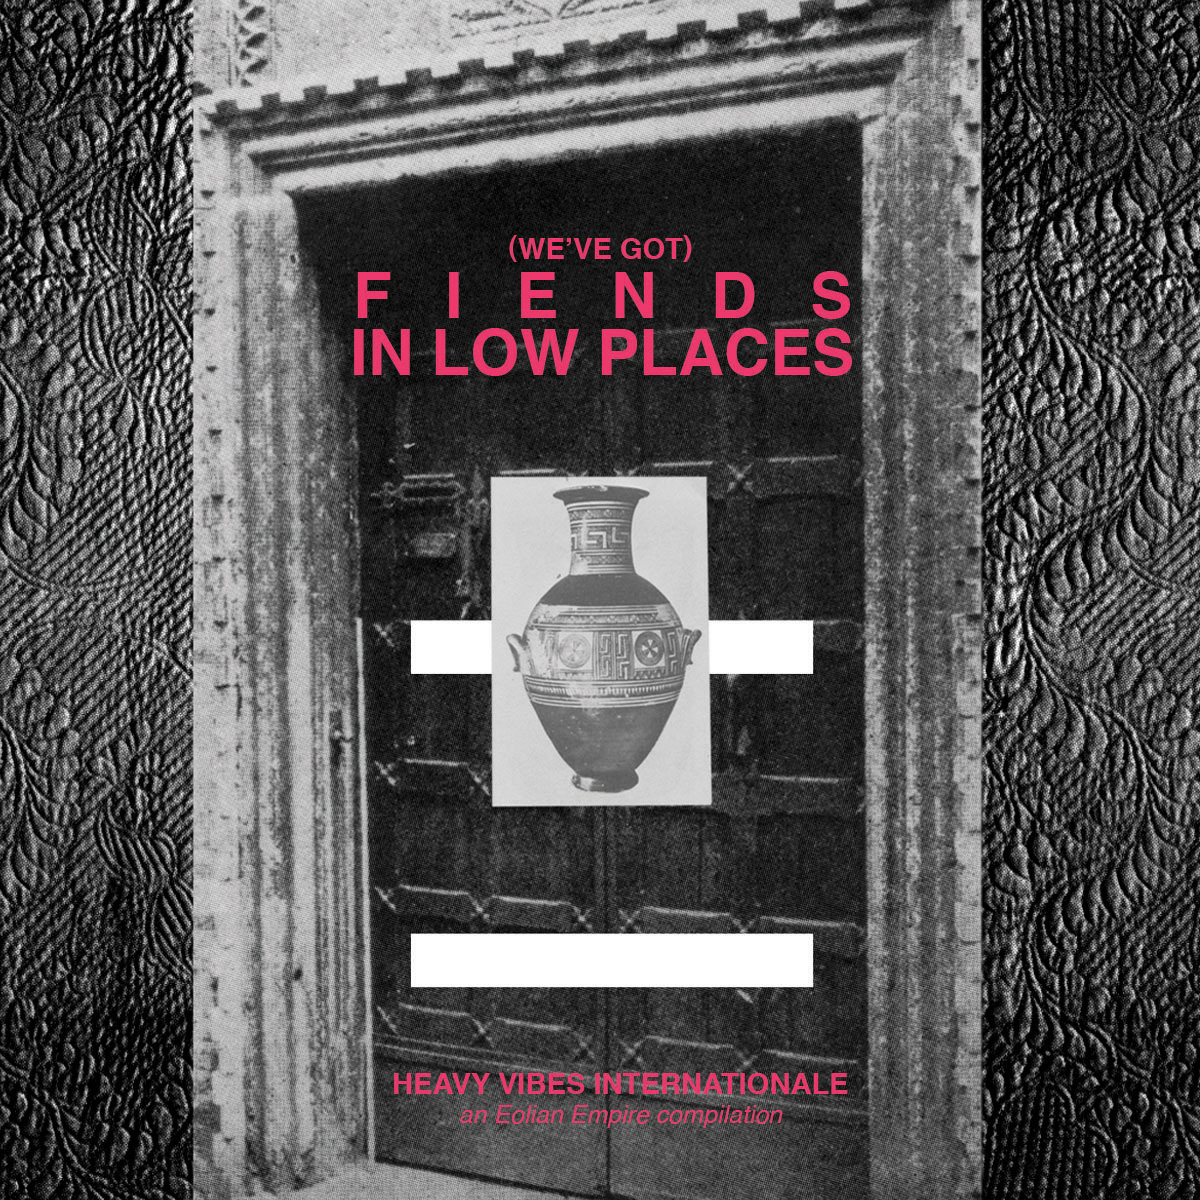 We've Got Fiends In Low Places